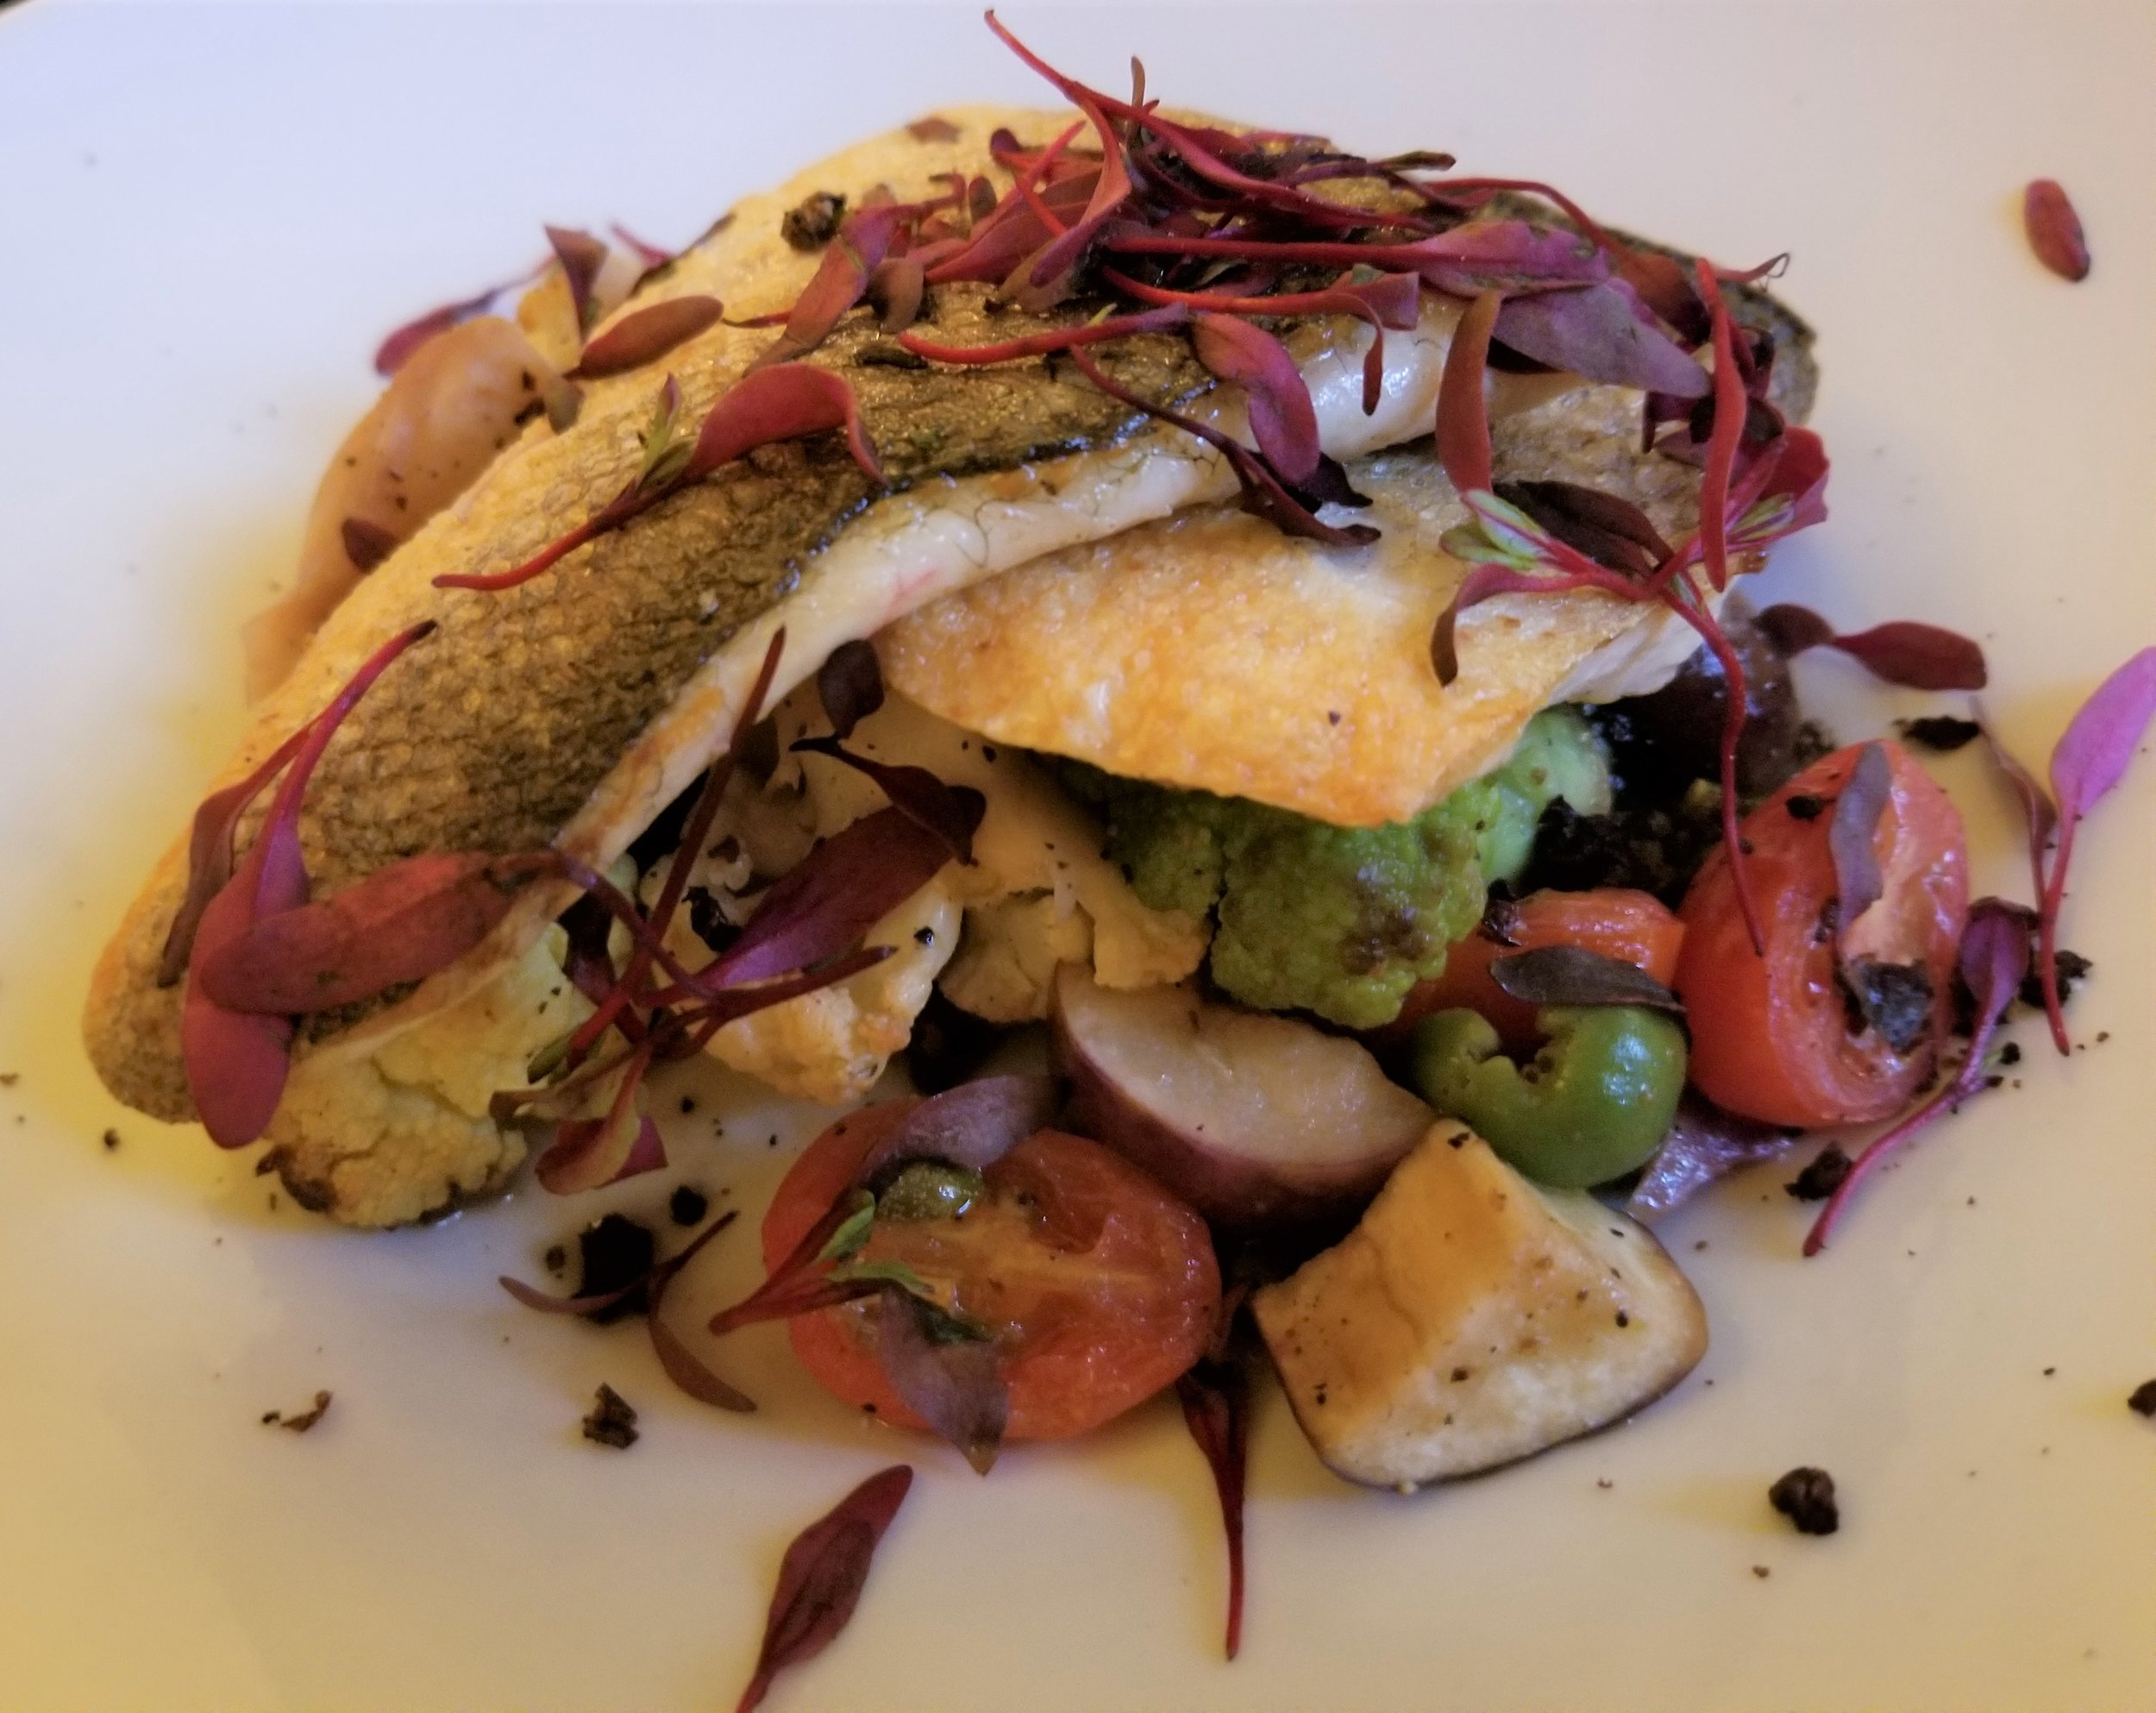 Branzino with rainbow cauliflower, eggplant, caper berries, grape tomatoes, Kalamata olives